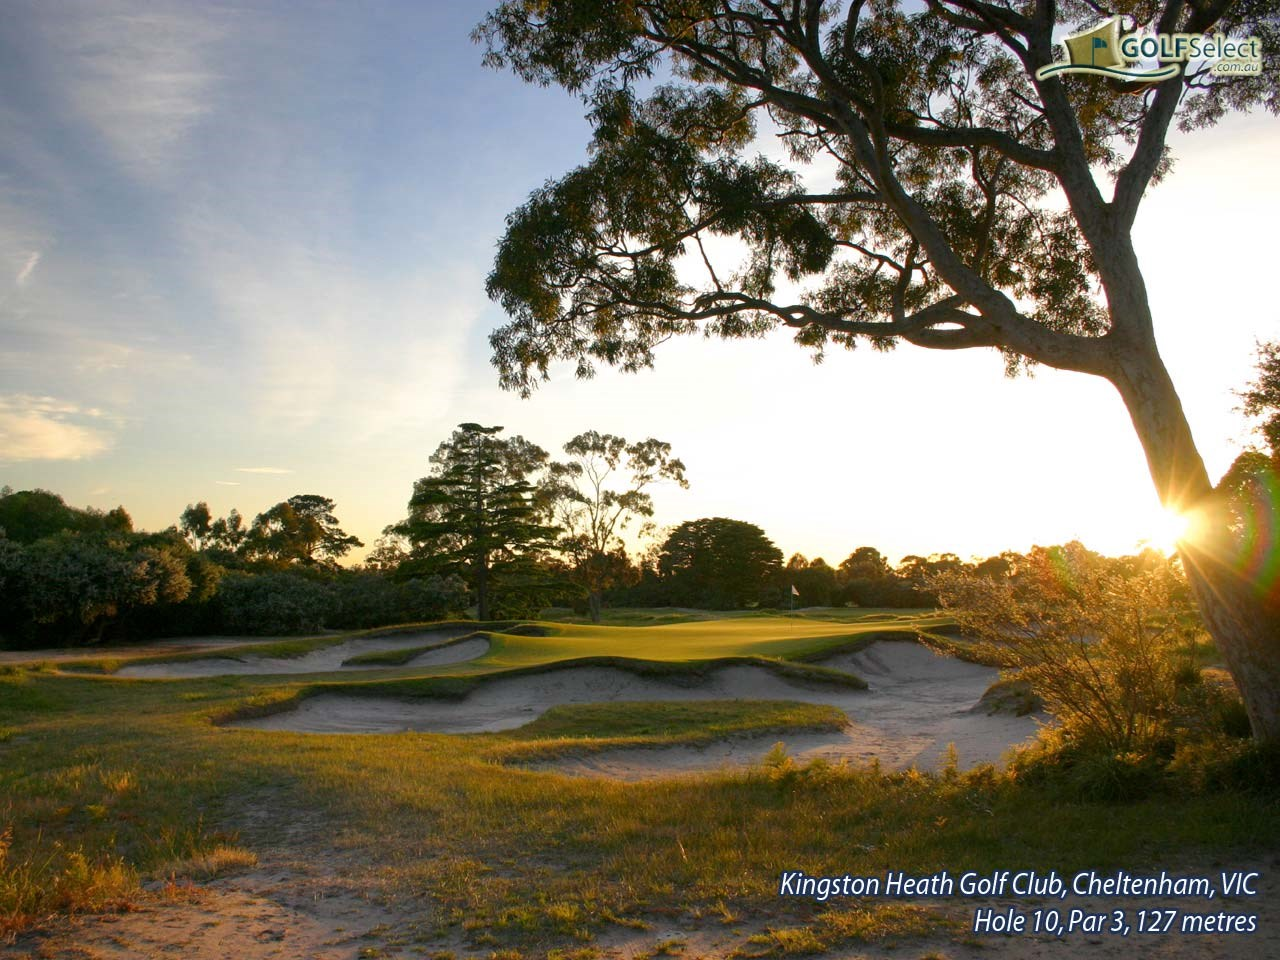 Kingston Heath Golf Club Hole 10, Par 3, 127 metres